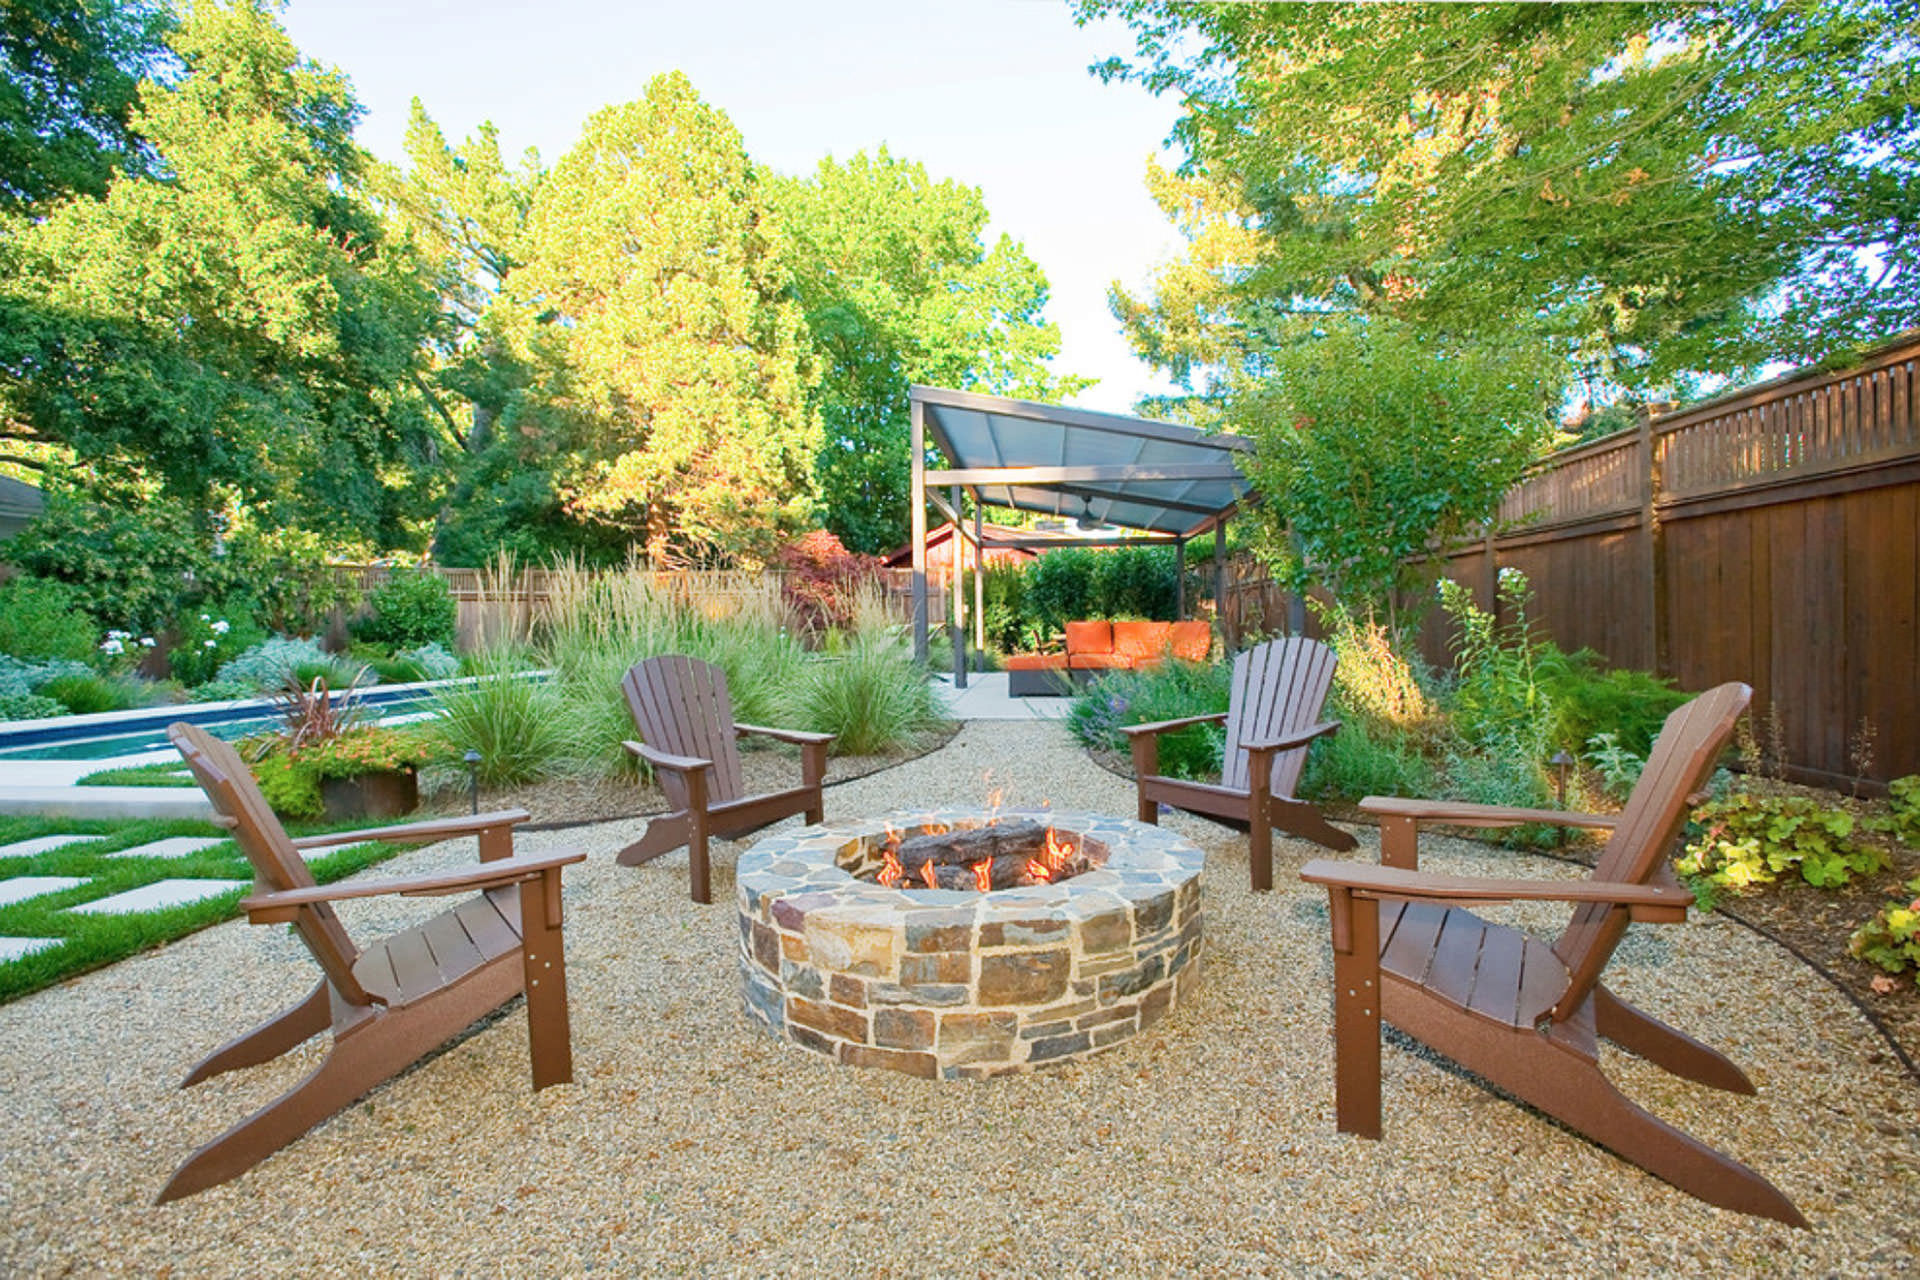 Outdoor patio ideas on pinterest pea gravel patio pea for Patio exterieur en bois